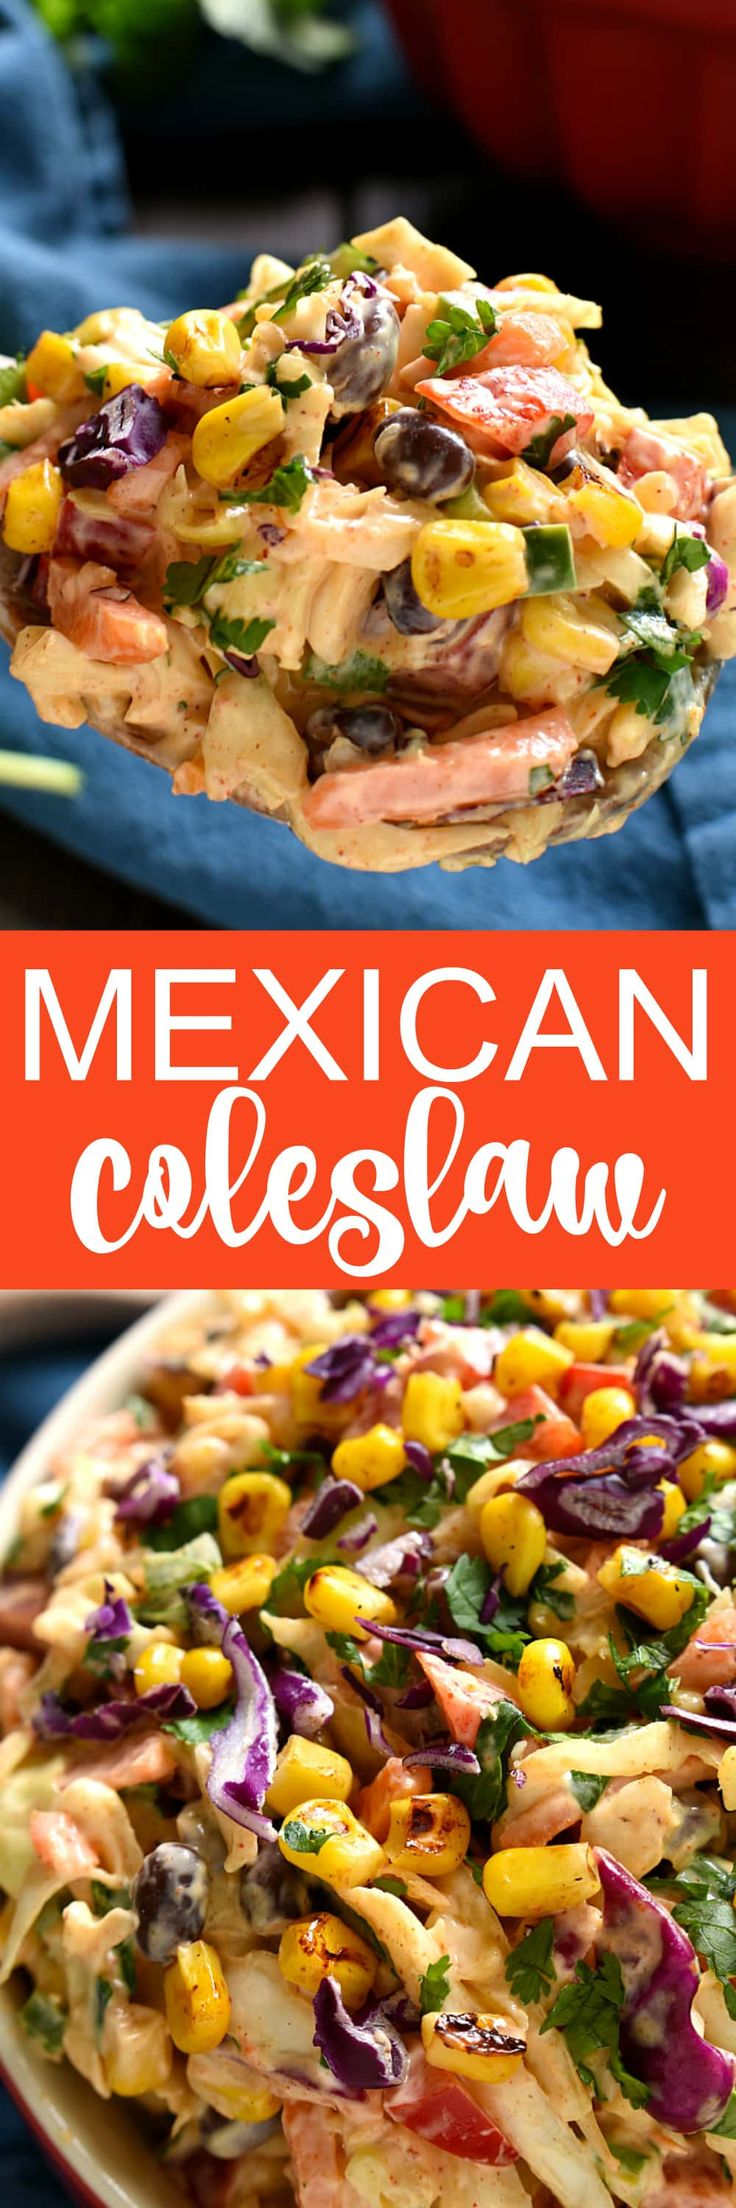 Taco Salad meets coleslaw in this deliciously creamy Mexican Coleslaw! Packed with flavor and perfect for summer cookouts! http://amzn.to/2pu2E2D